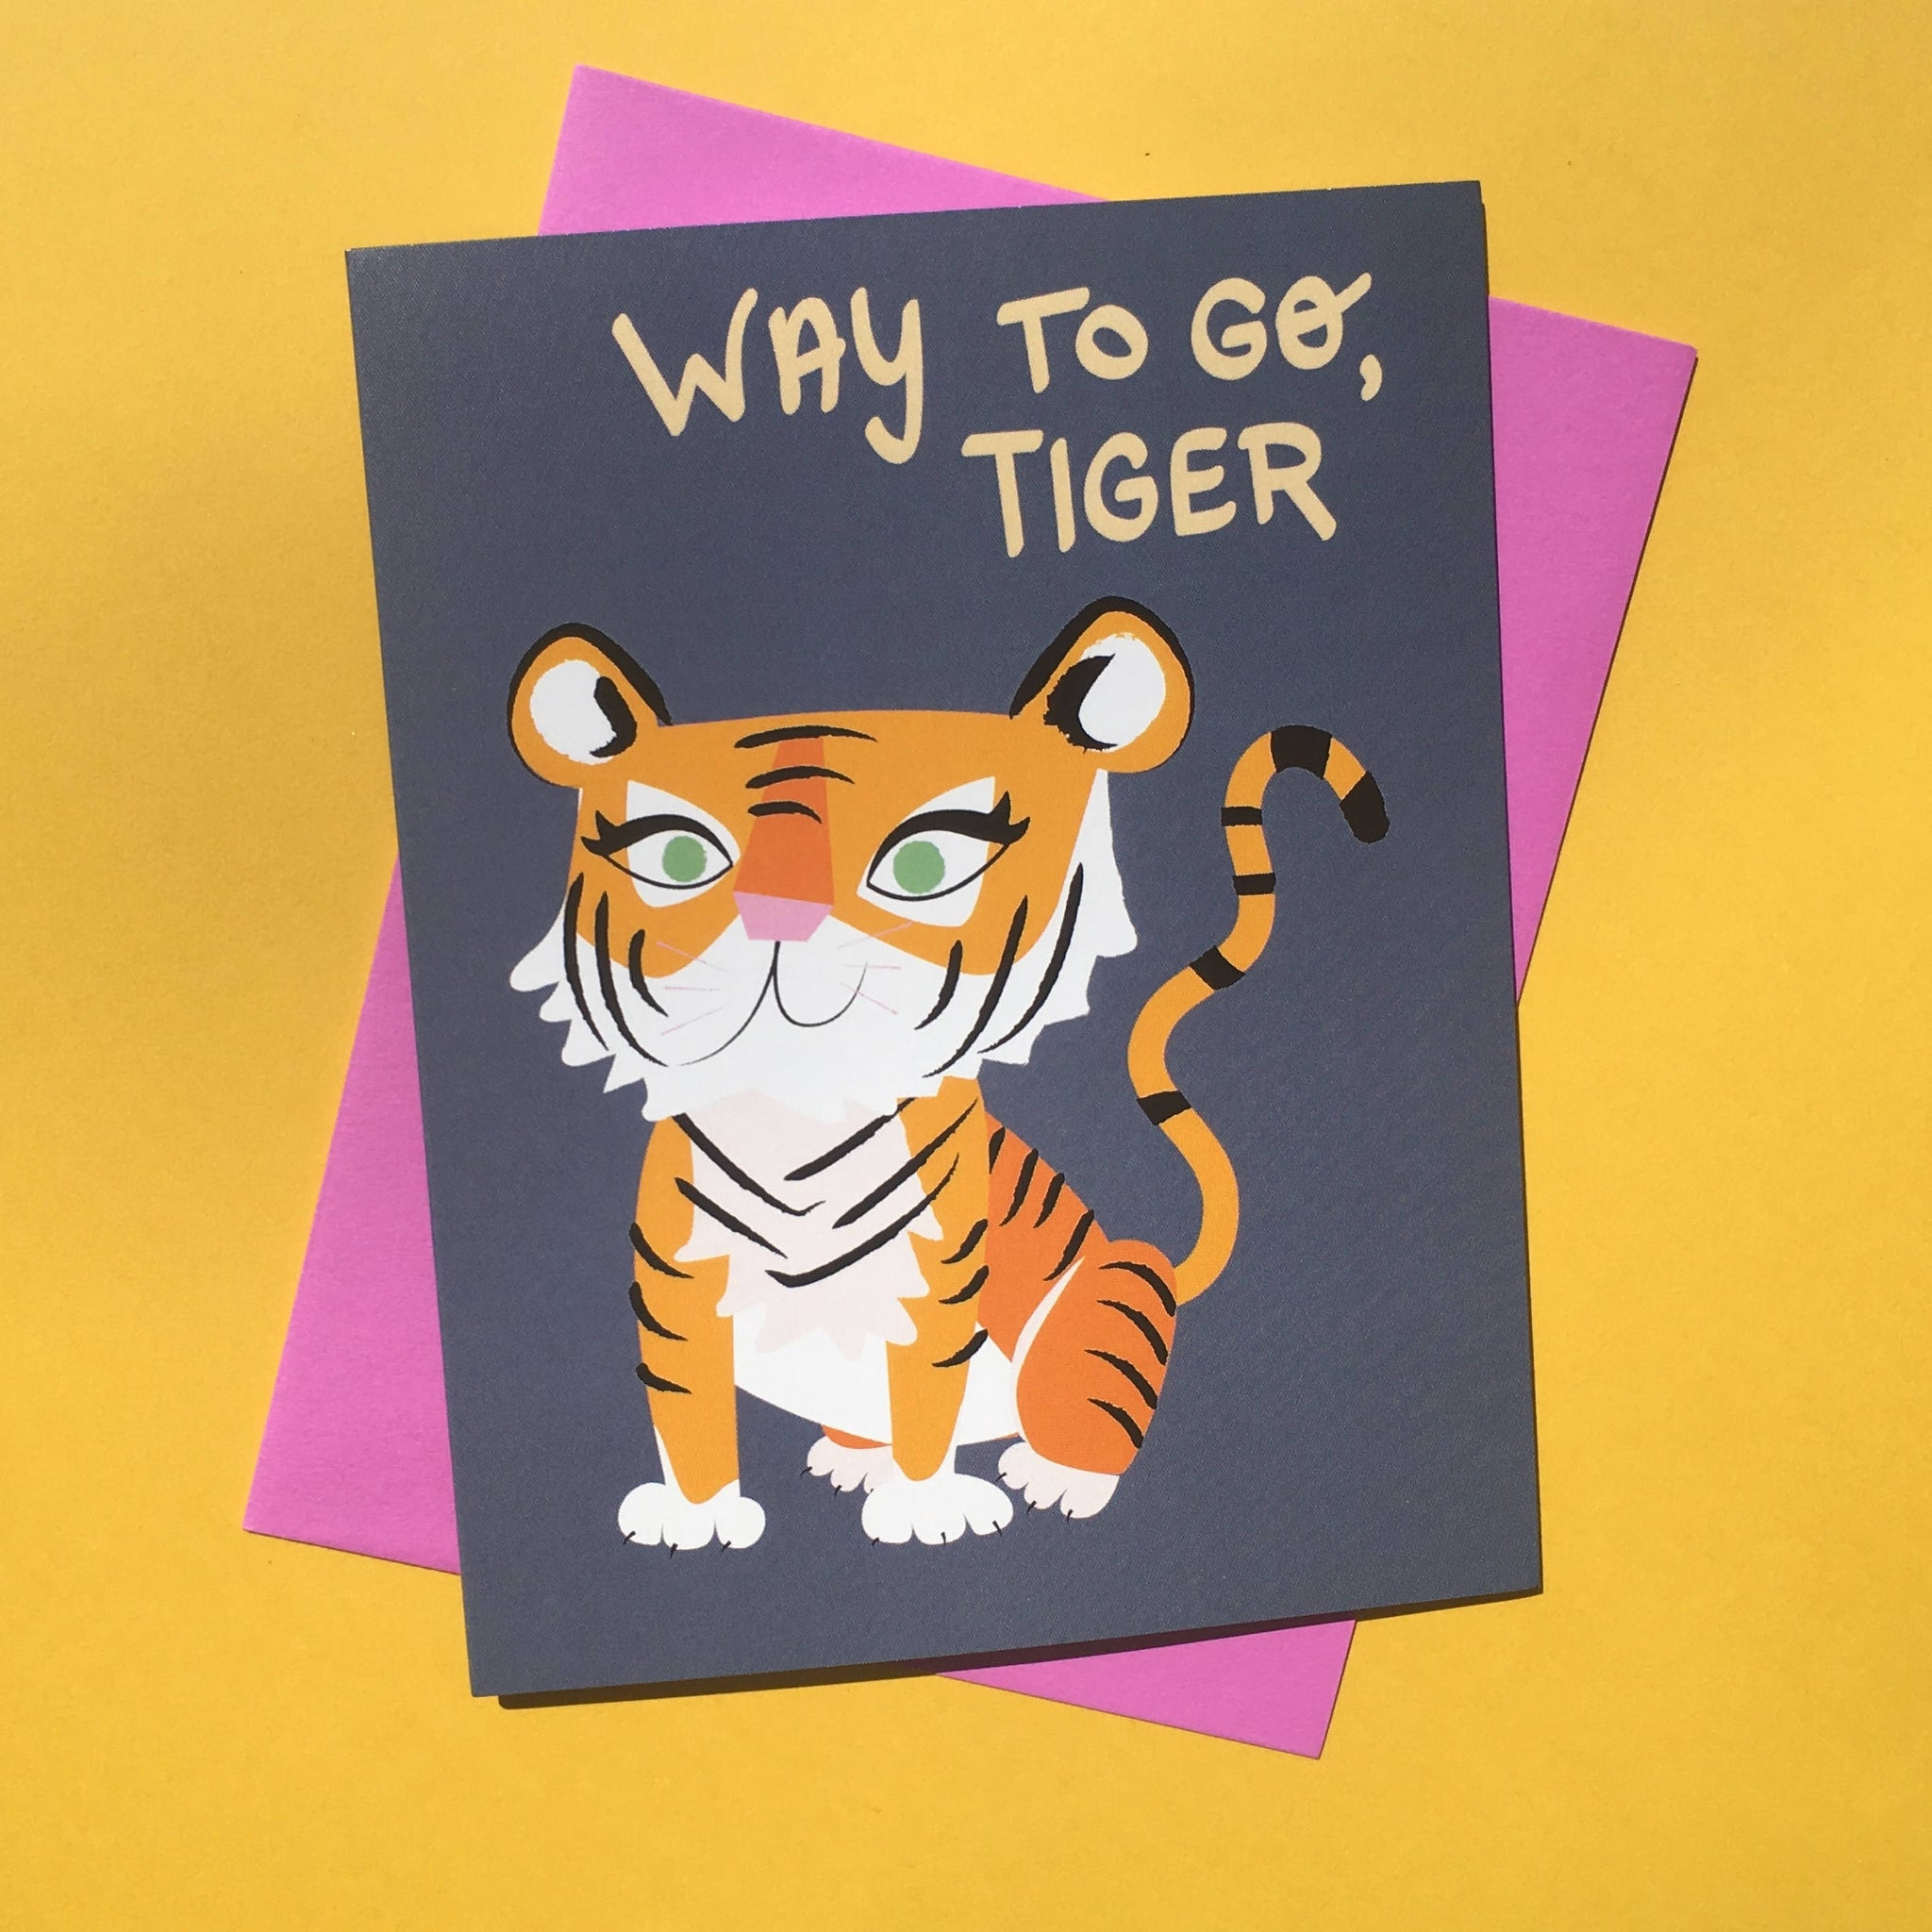 Way to Go Tiger! Card